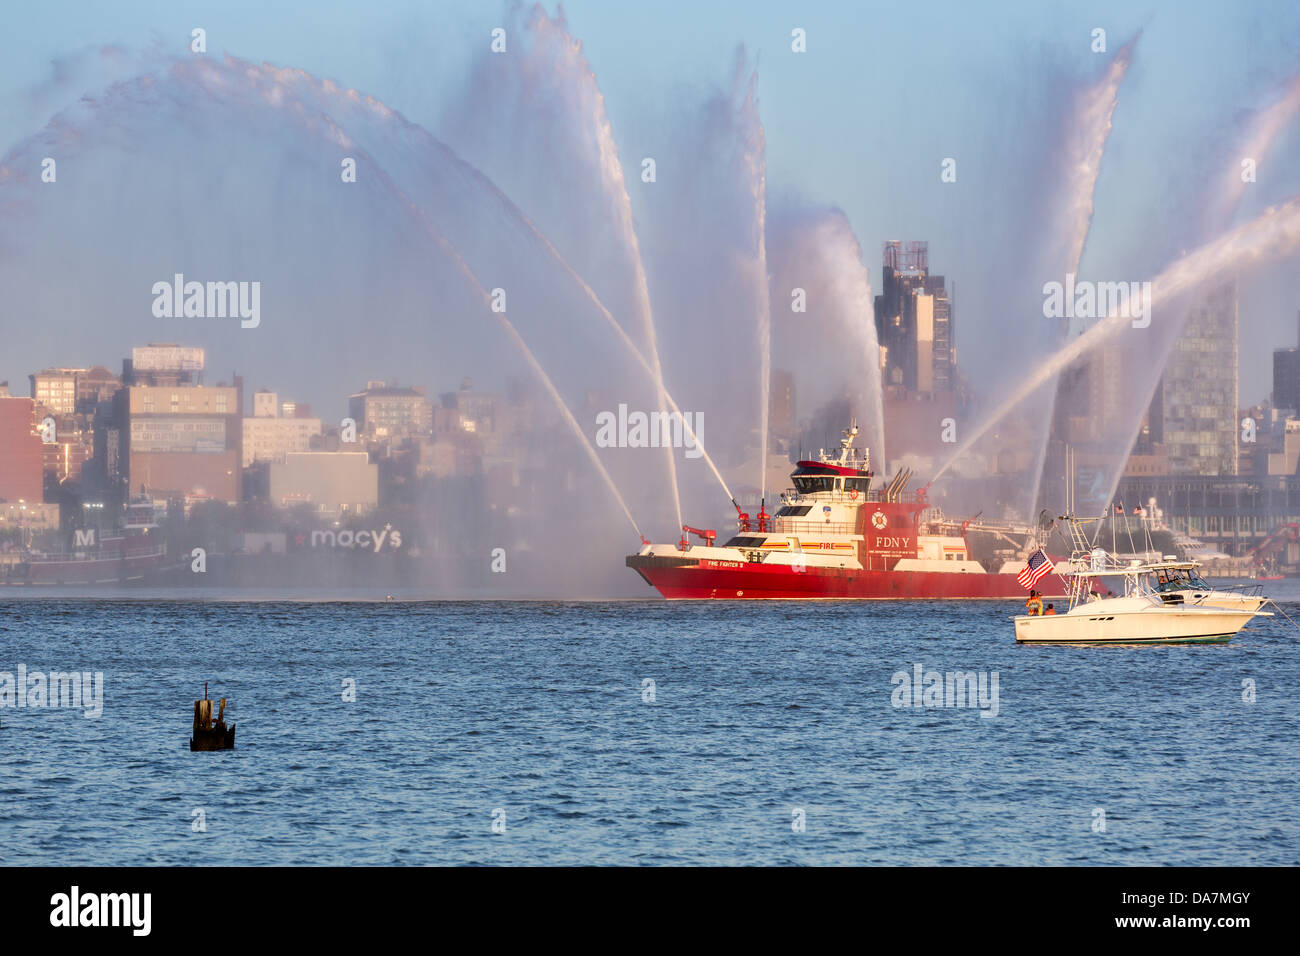 Fire Fighter fireboat parading on Hudson River - 4th of July, 2013 - Stock Image